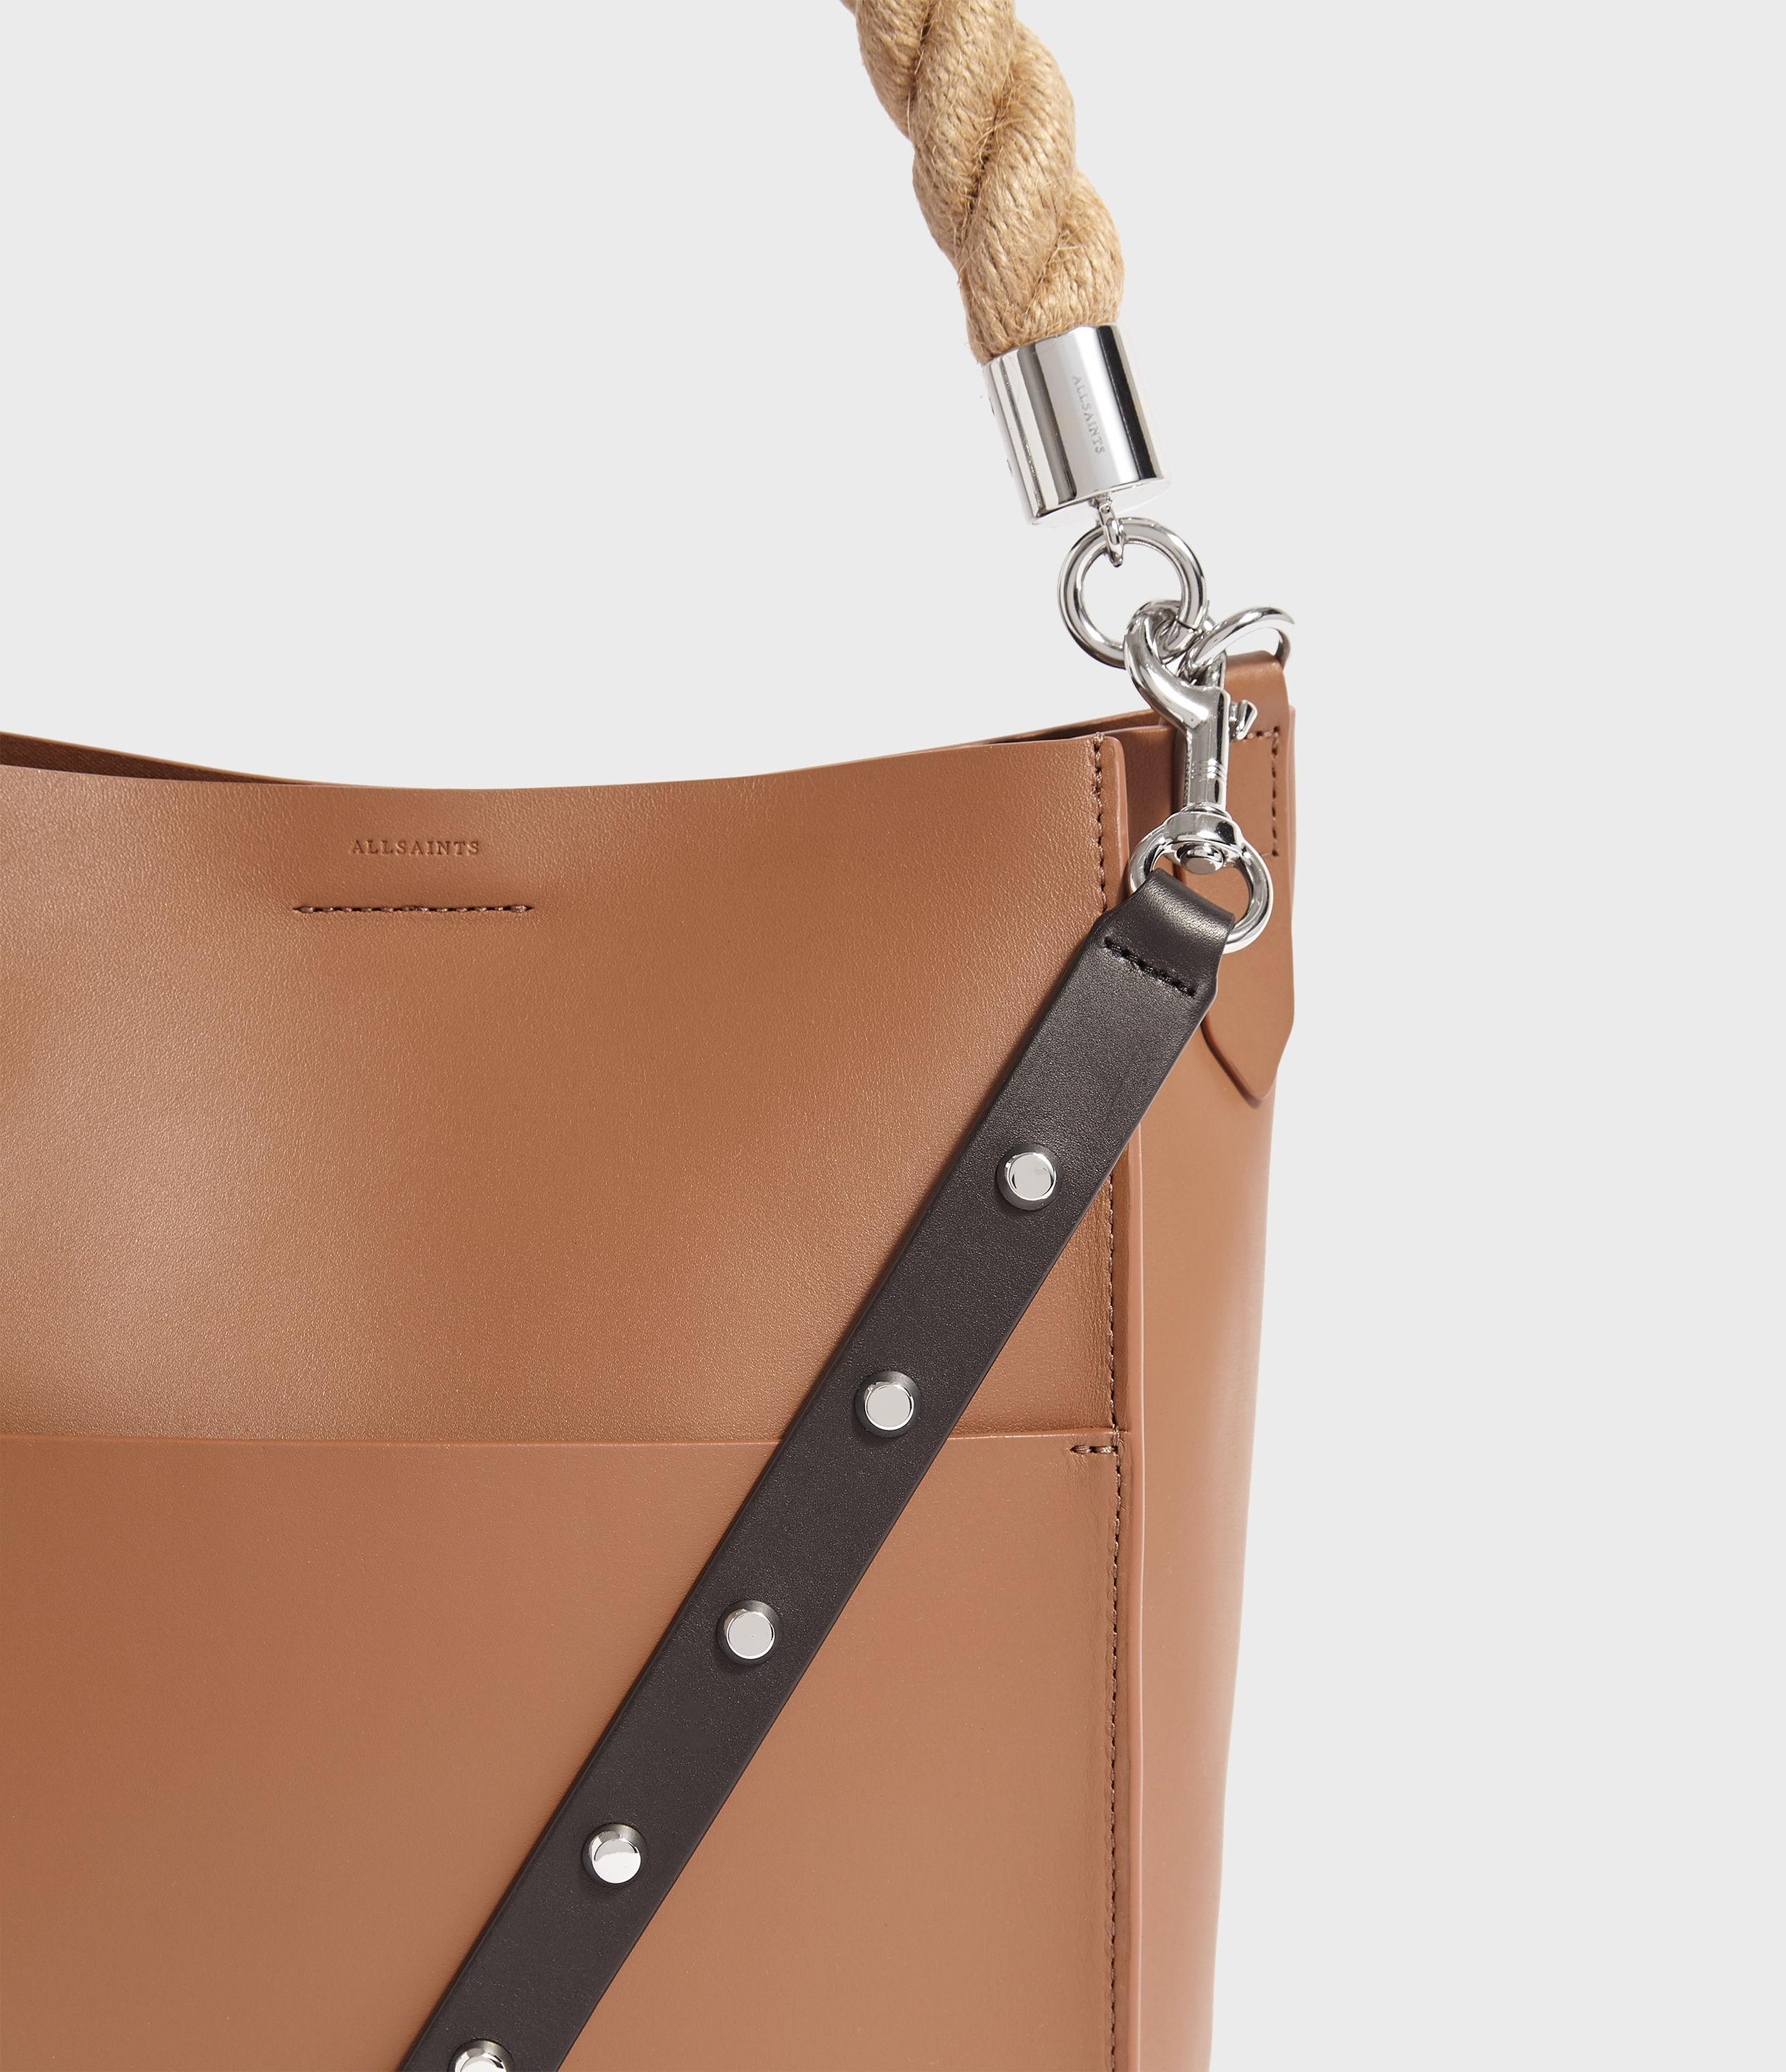 7a8289bae5b1f AllSaints Harri Leather Small North South Tote Bag in Brown - Lyst